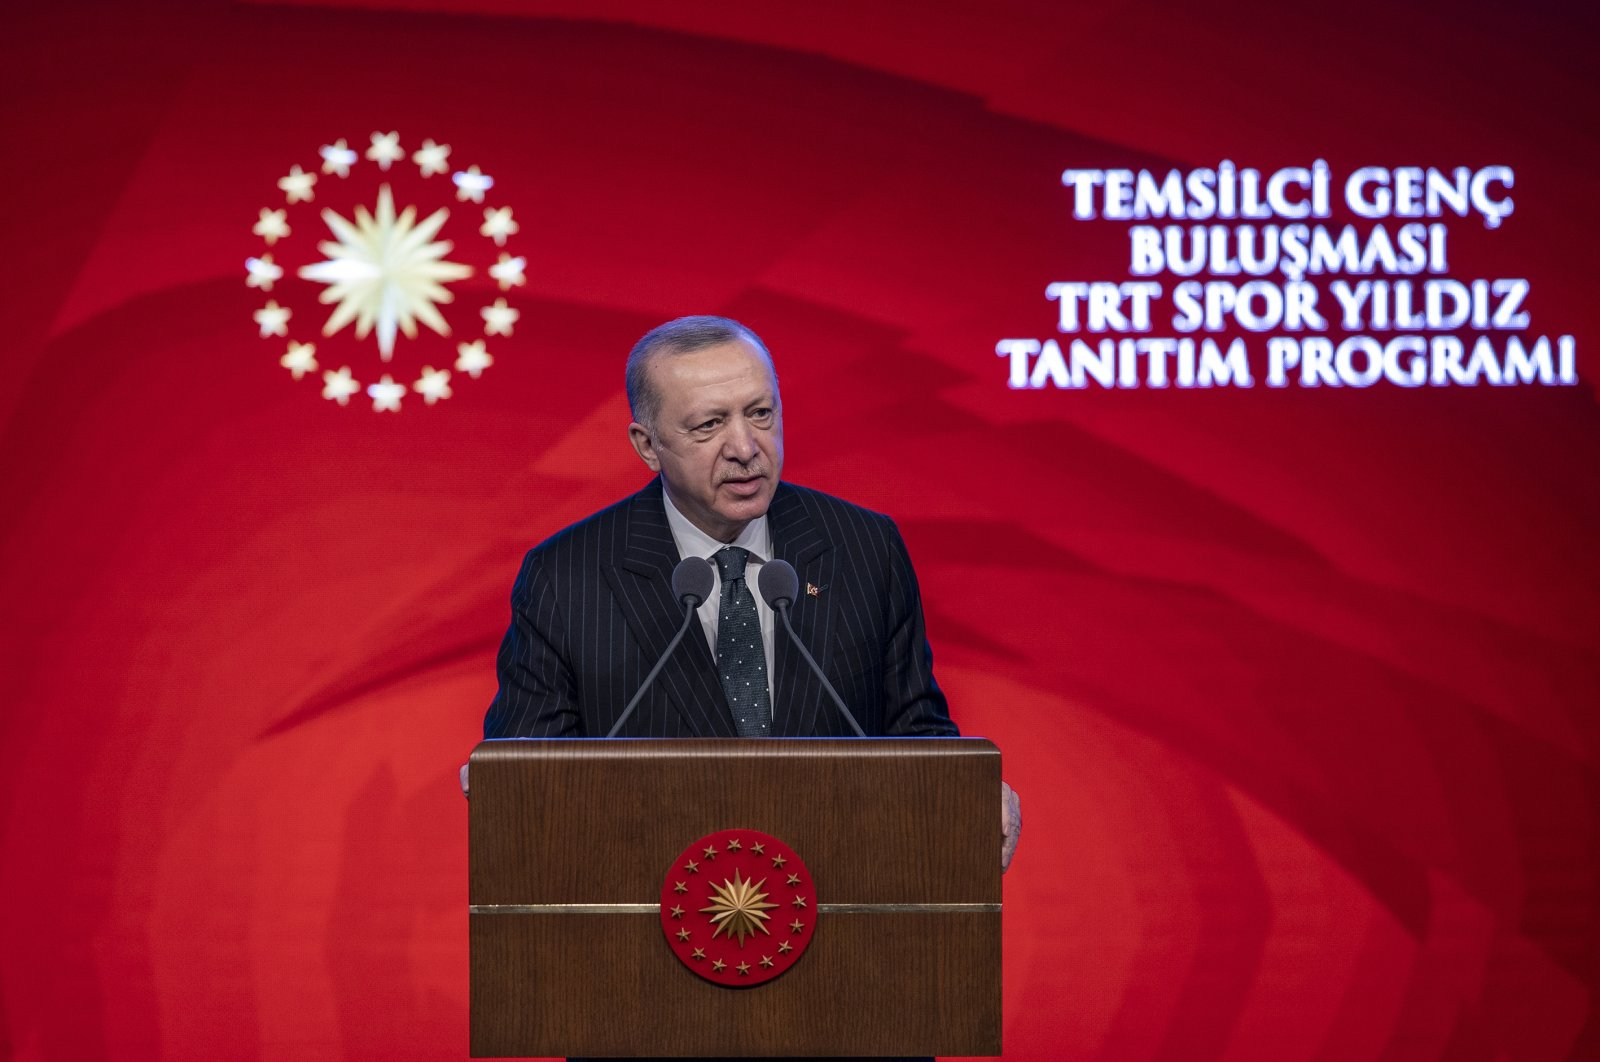 President Recep Tayyip Erdoğan speaks at a ceremony to mark the May 19 Youth and Sports Day in the capital Ankara, Turkey, May 19, 2021. (AA Photo)